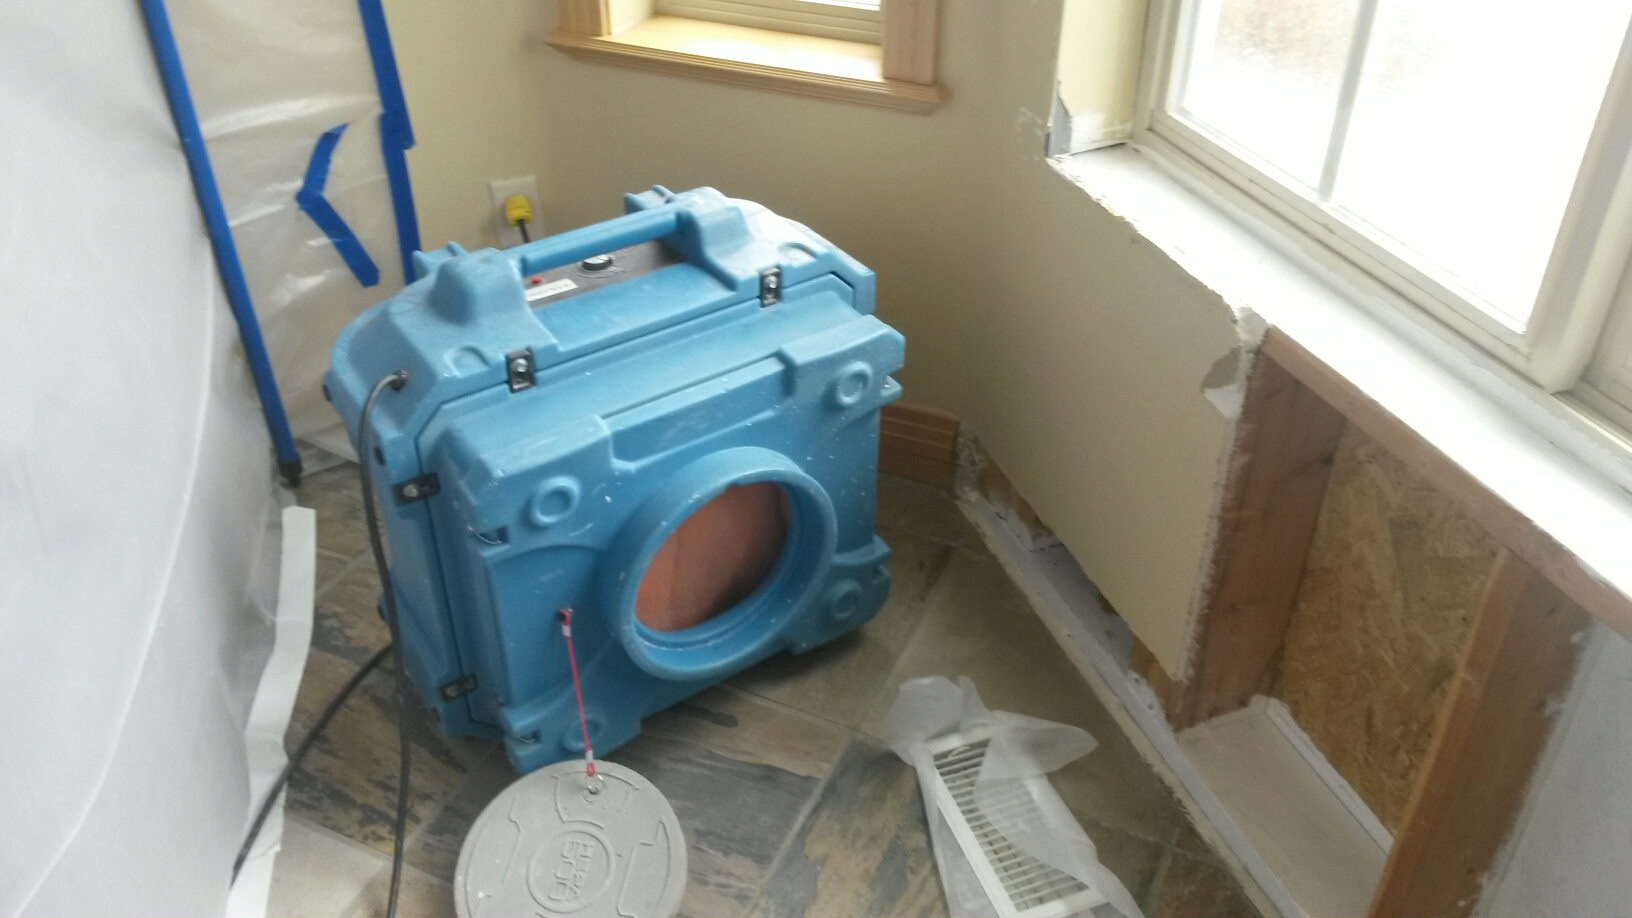 Park City, UT - Mold is all cleaned up. We are back to pick up our airscrubber and other equipment.